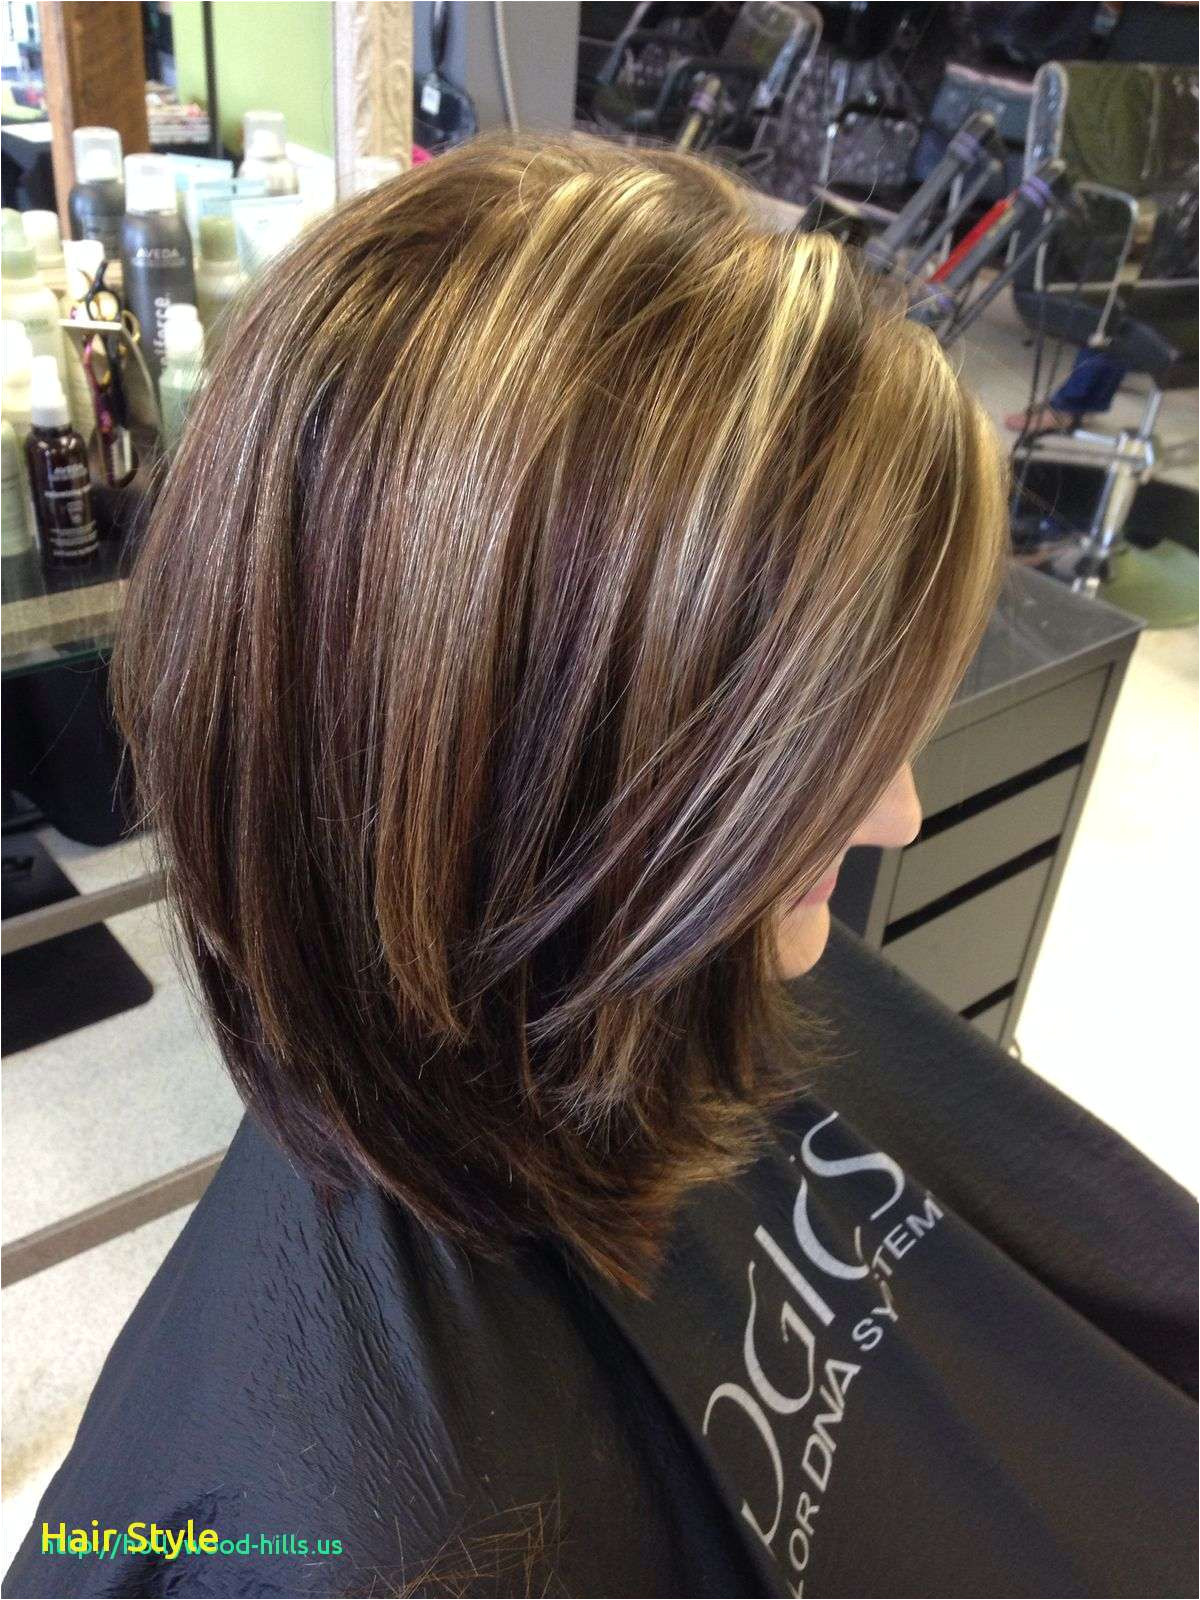 black hairstyles with red highlights lovely i pinimg 1200x 0d 60 8a 0d608a58a4bb3ed3b a of black